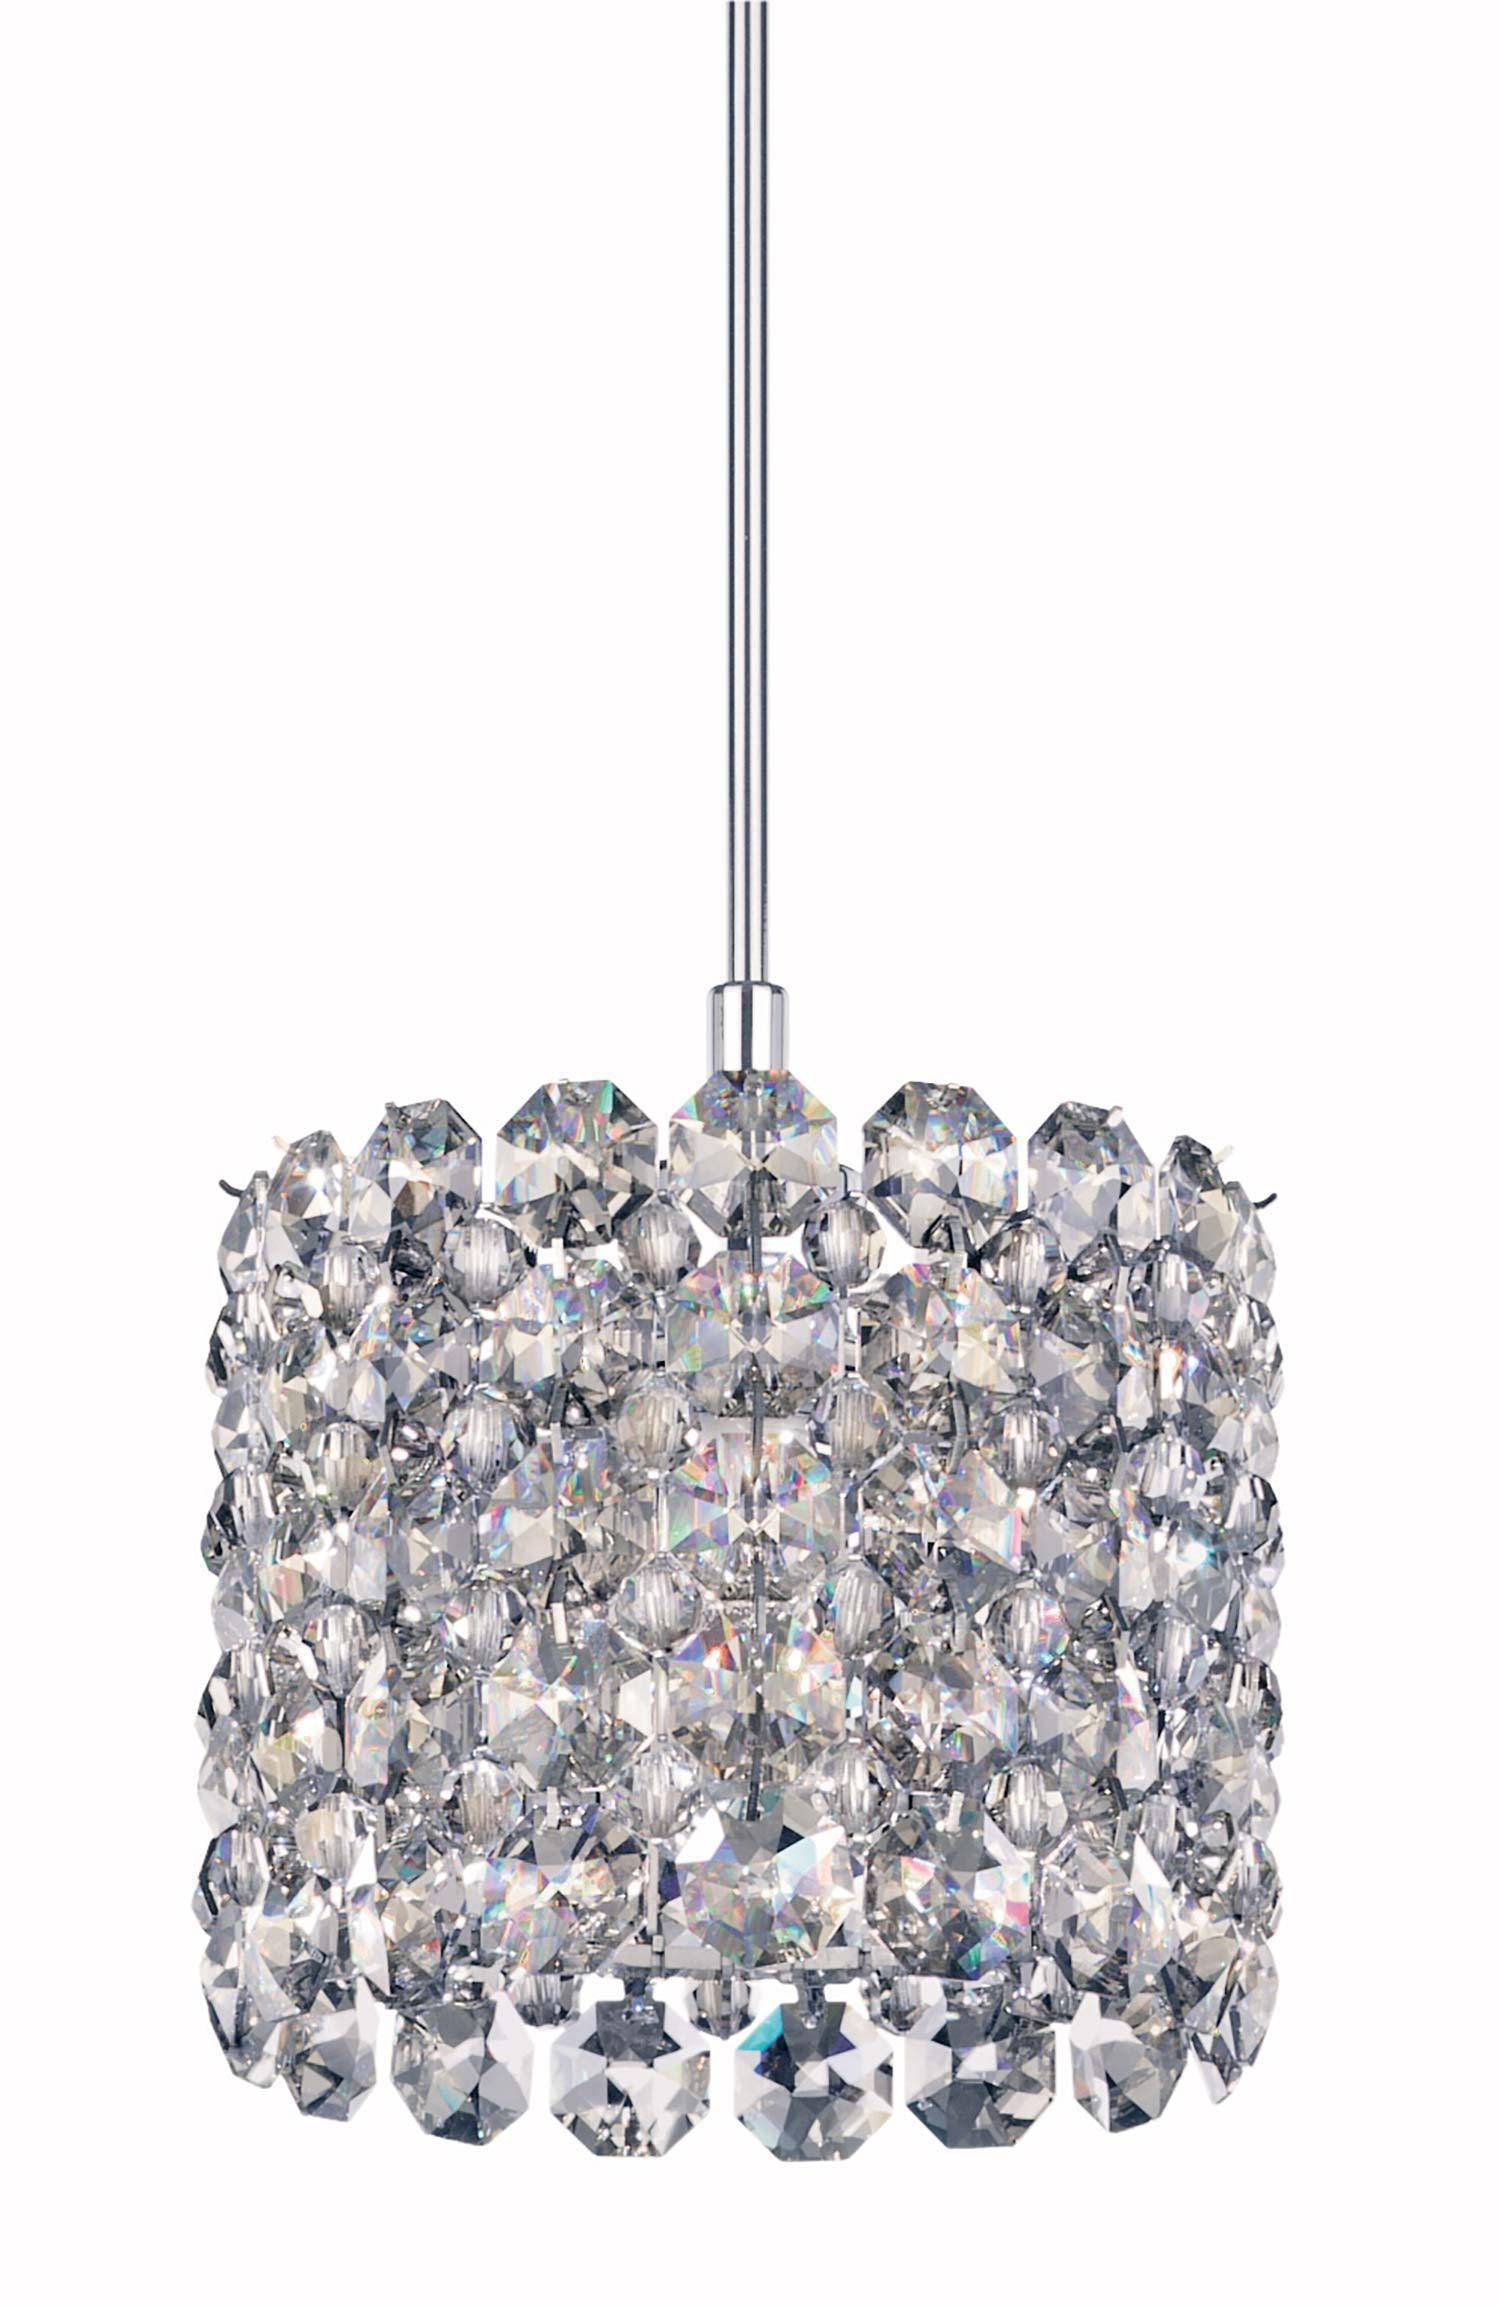 Design Of Crystal Pendant Lights With Interior Decor Inspiration throughout Crystal Teardrop Pendant Lights (Image 4 of 15)